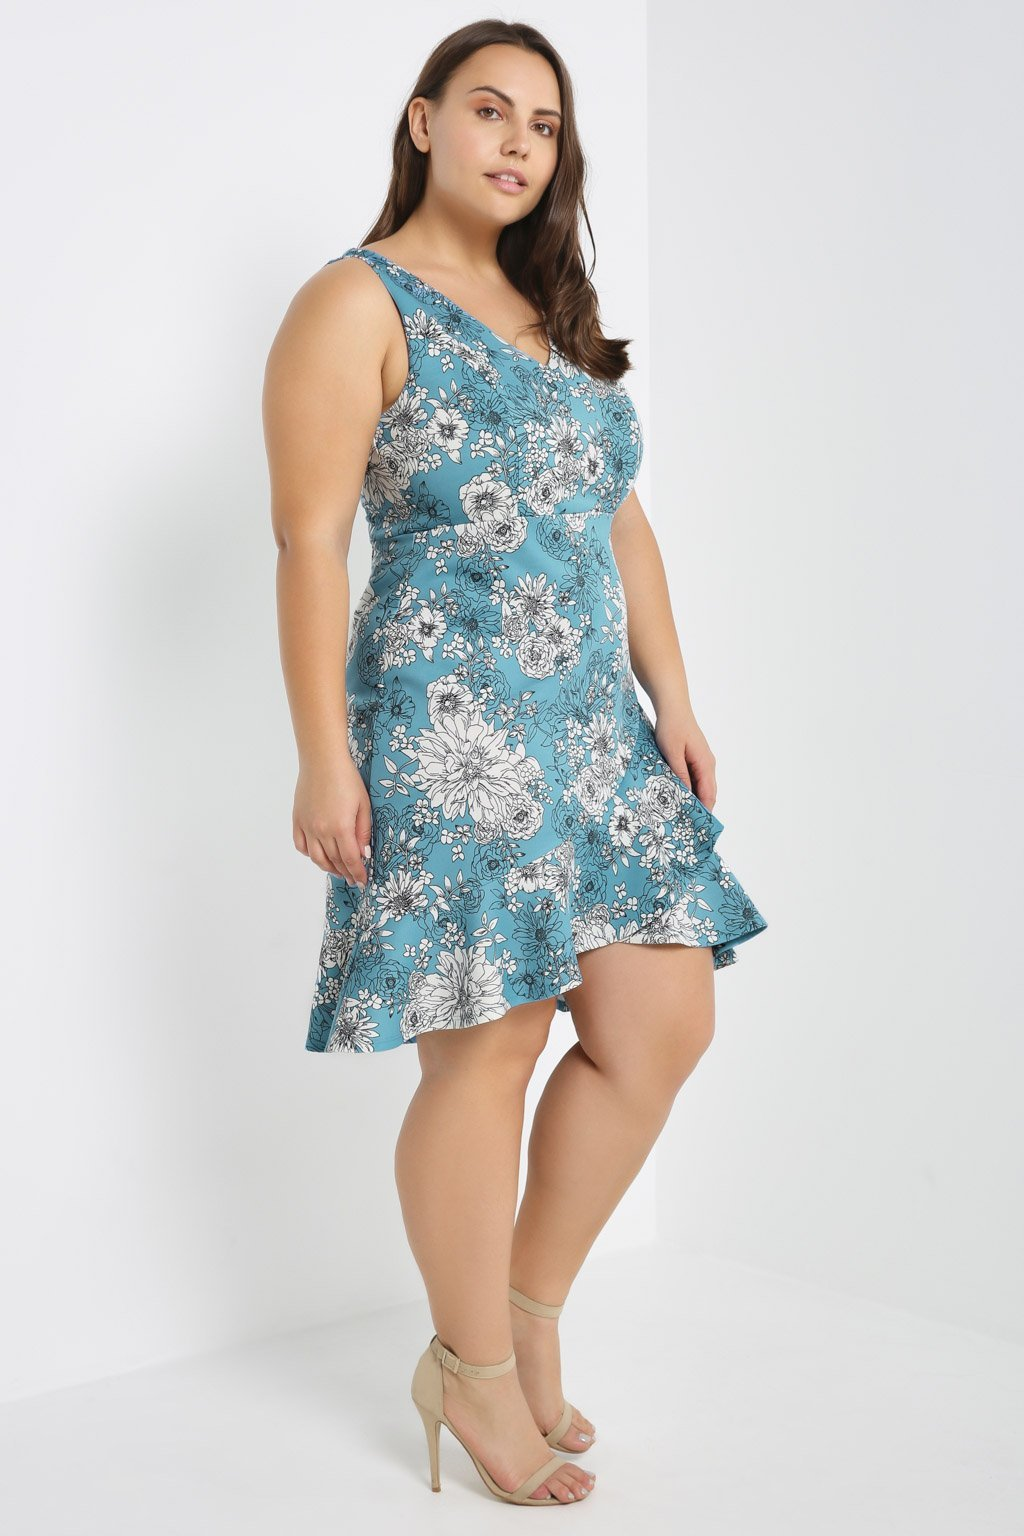 Poshsquare Plus Contrast Floral Skater Dress Plus Size